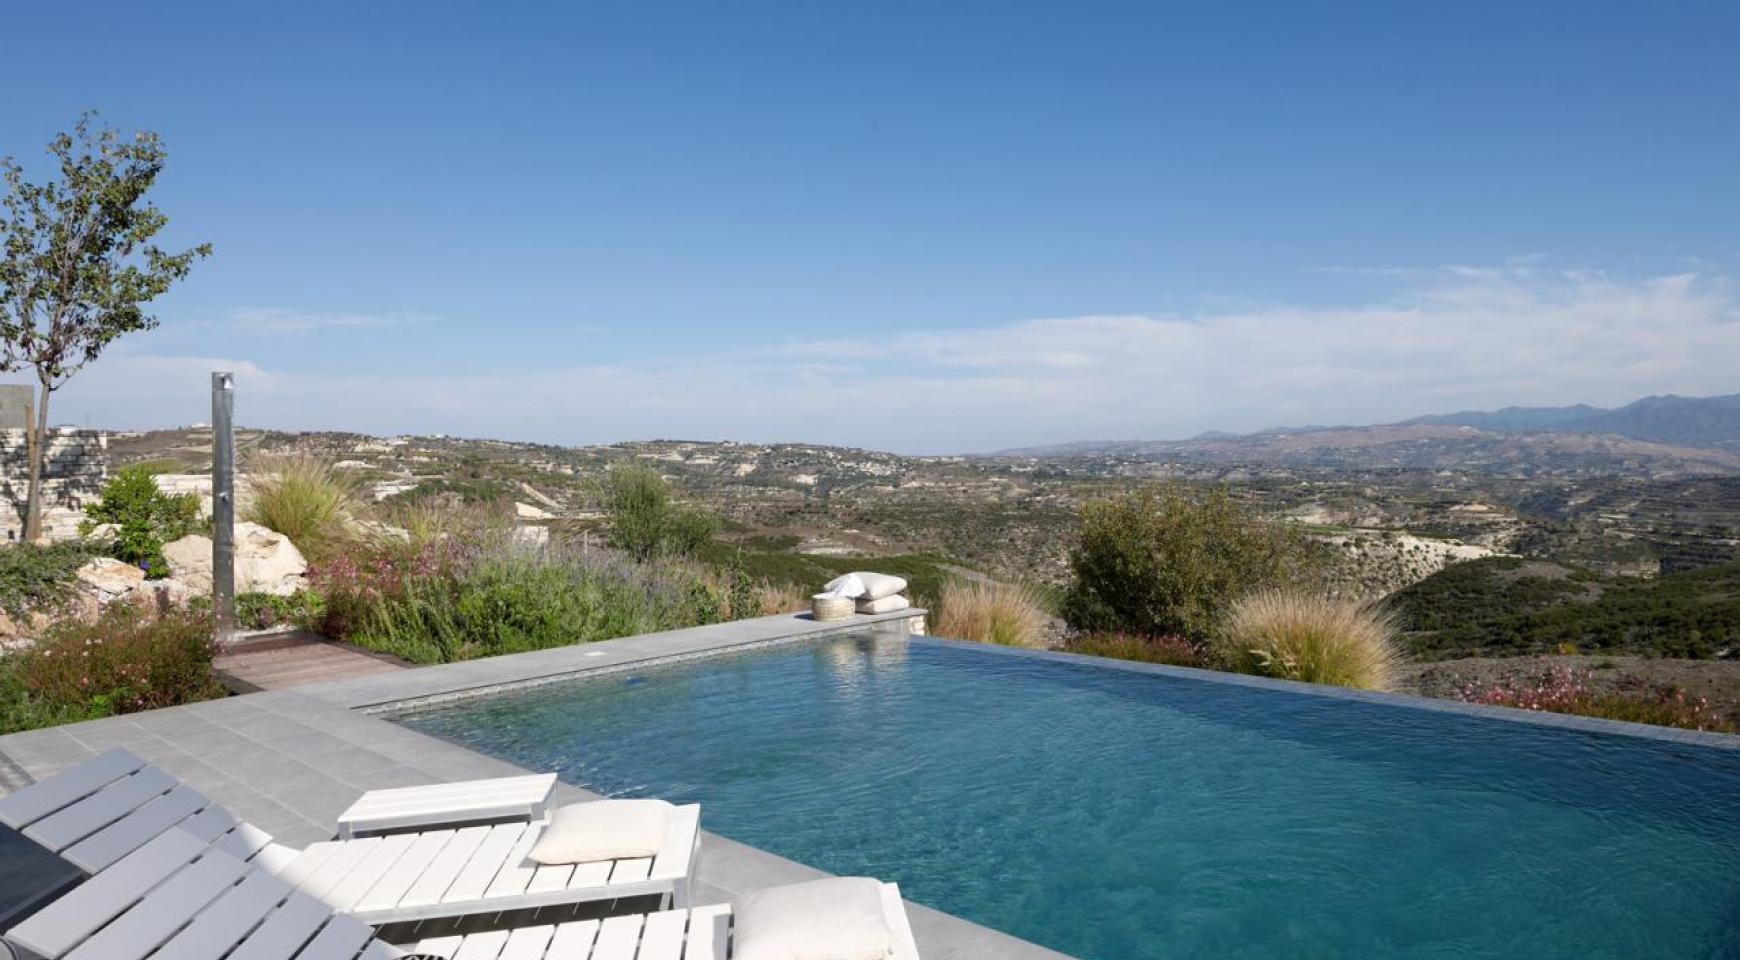 Golf Property - Exclusive 3 Bedroom Villa with Stunning Views - 10